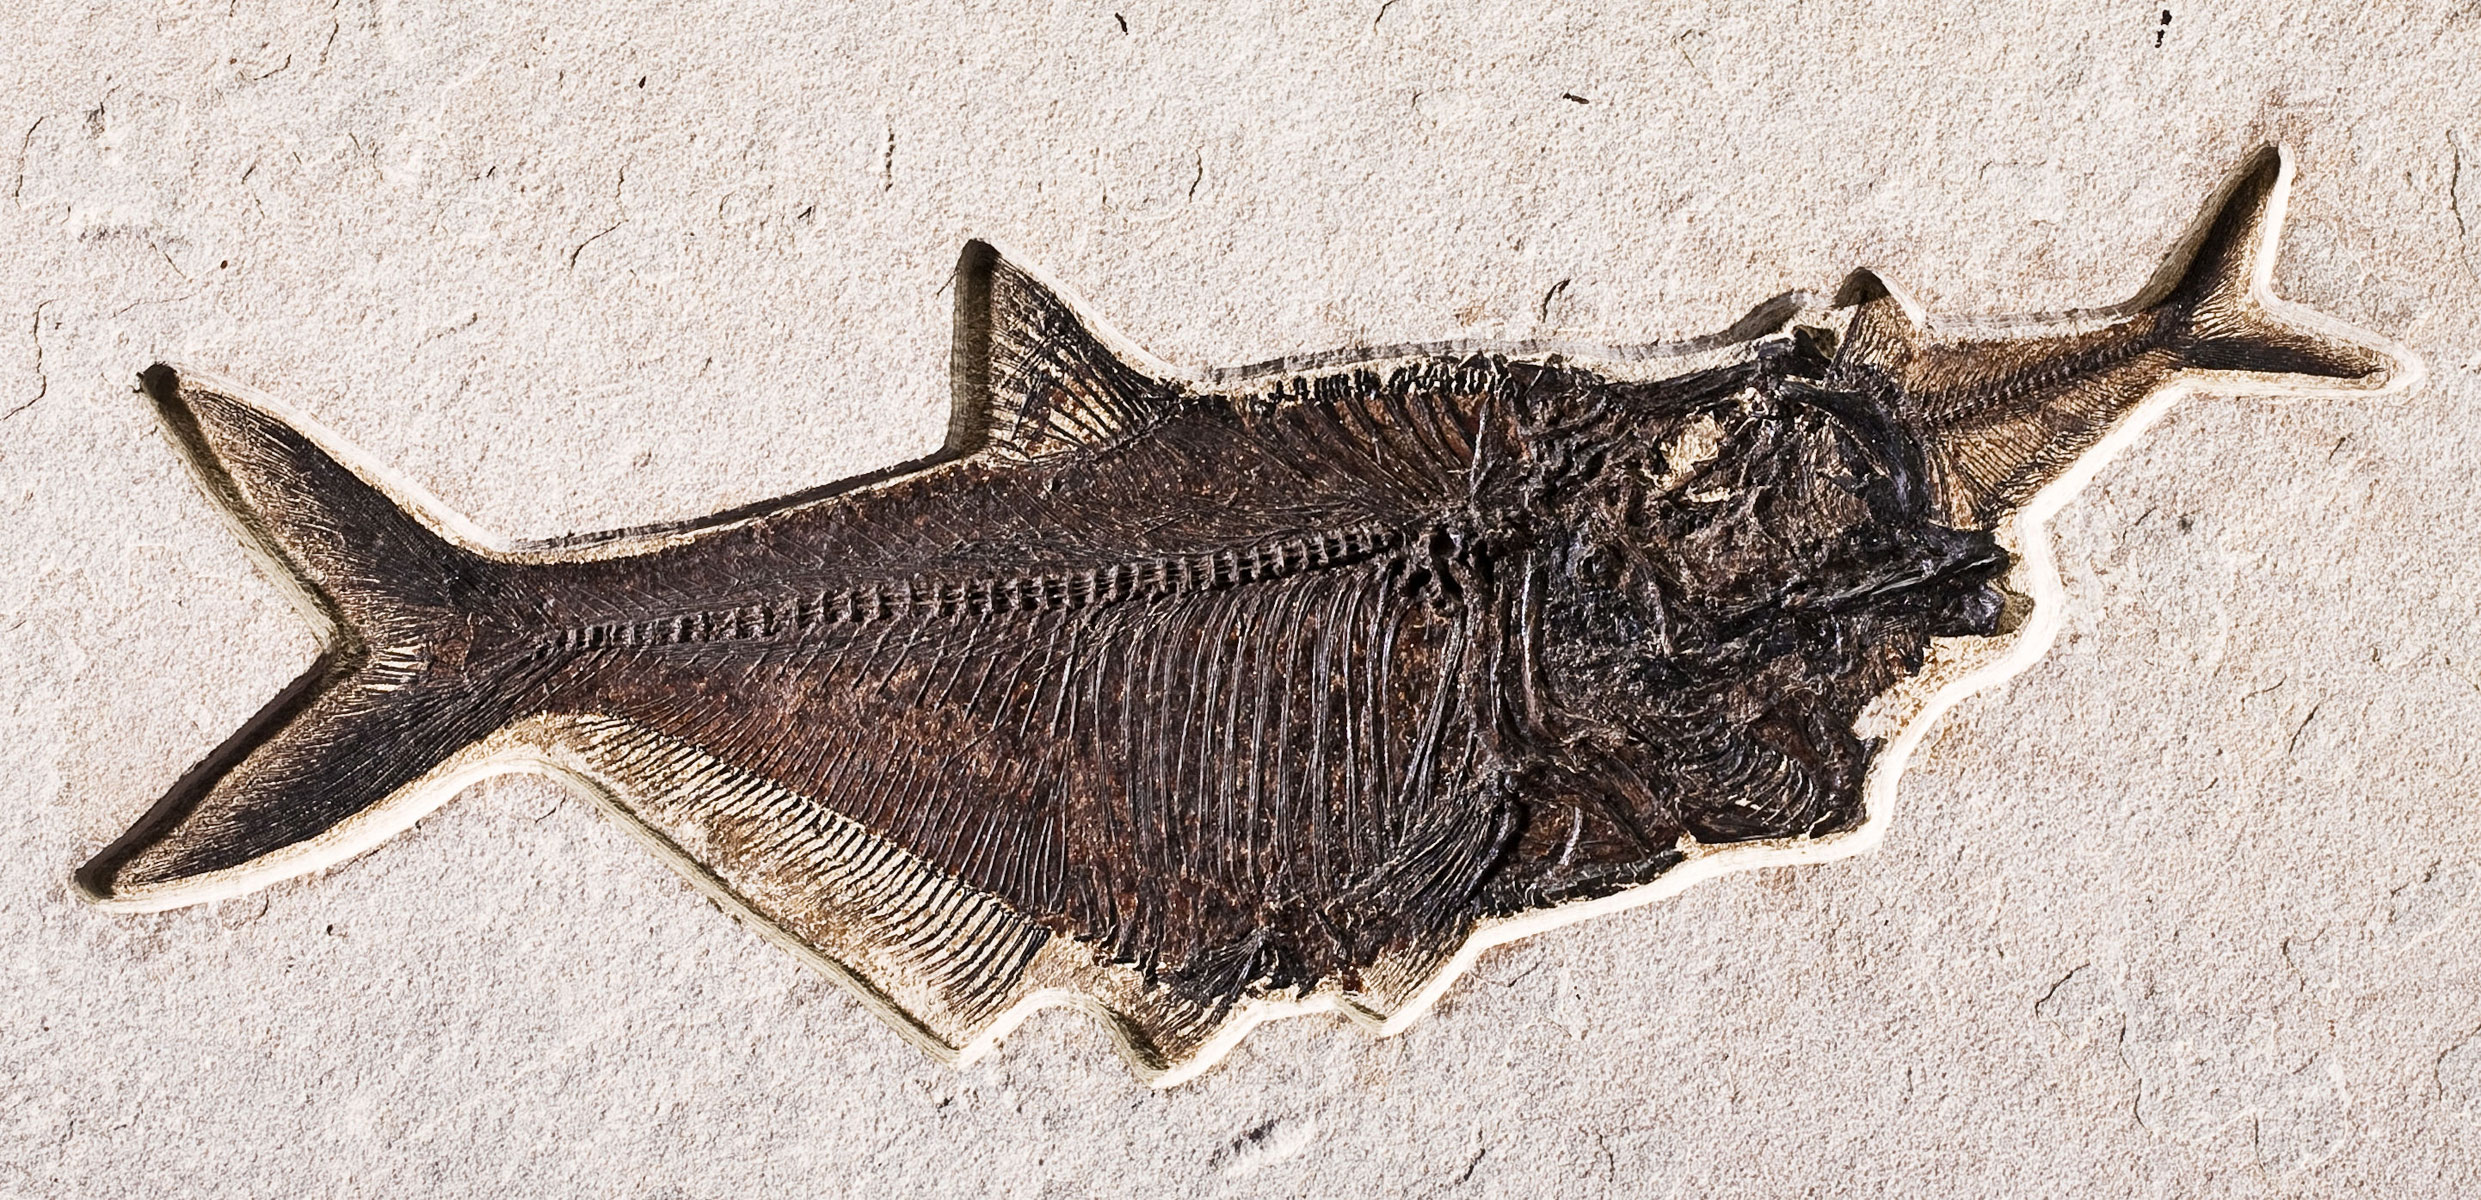 Fossil-Fish-Aspiration-Diplomystus-dentatus Va Form Example on af forms, veterans administration forms, gp forms, qa forms, pf forms, printable dental charting forms, qc forms, appeal property forms, usda rd forms, hud forms,